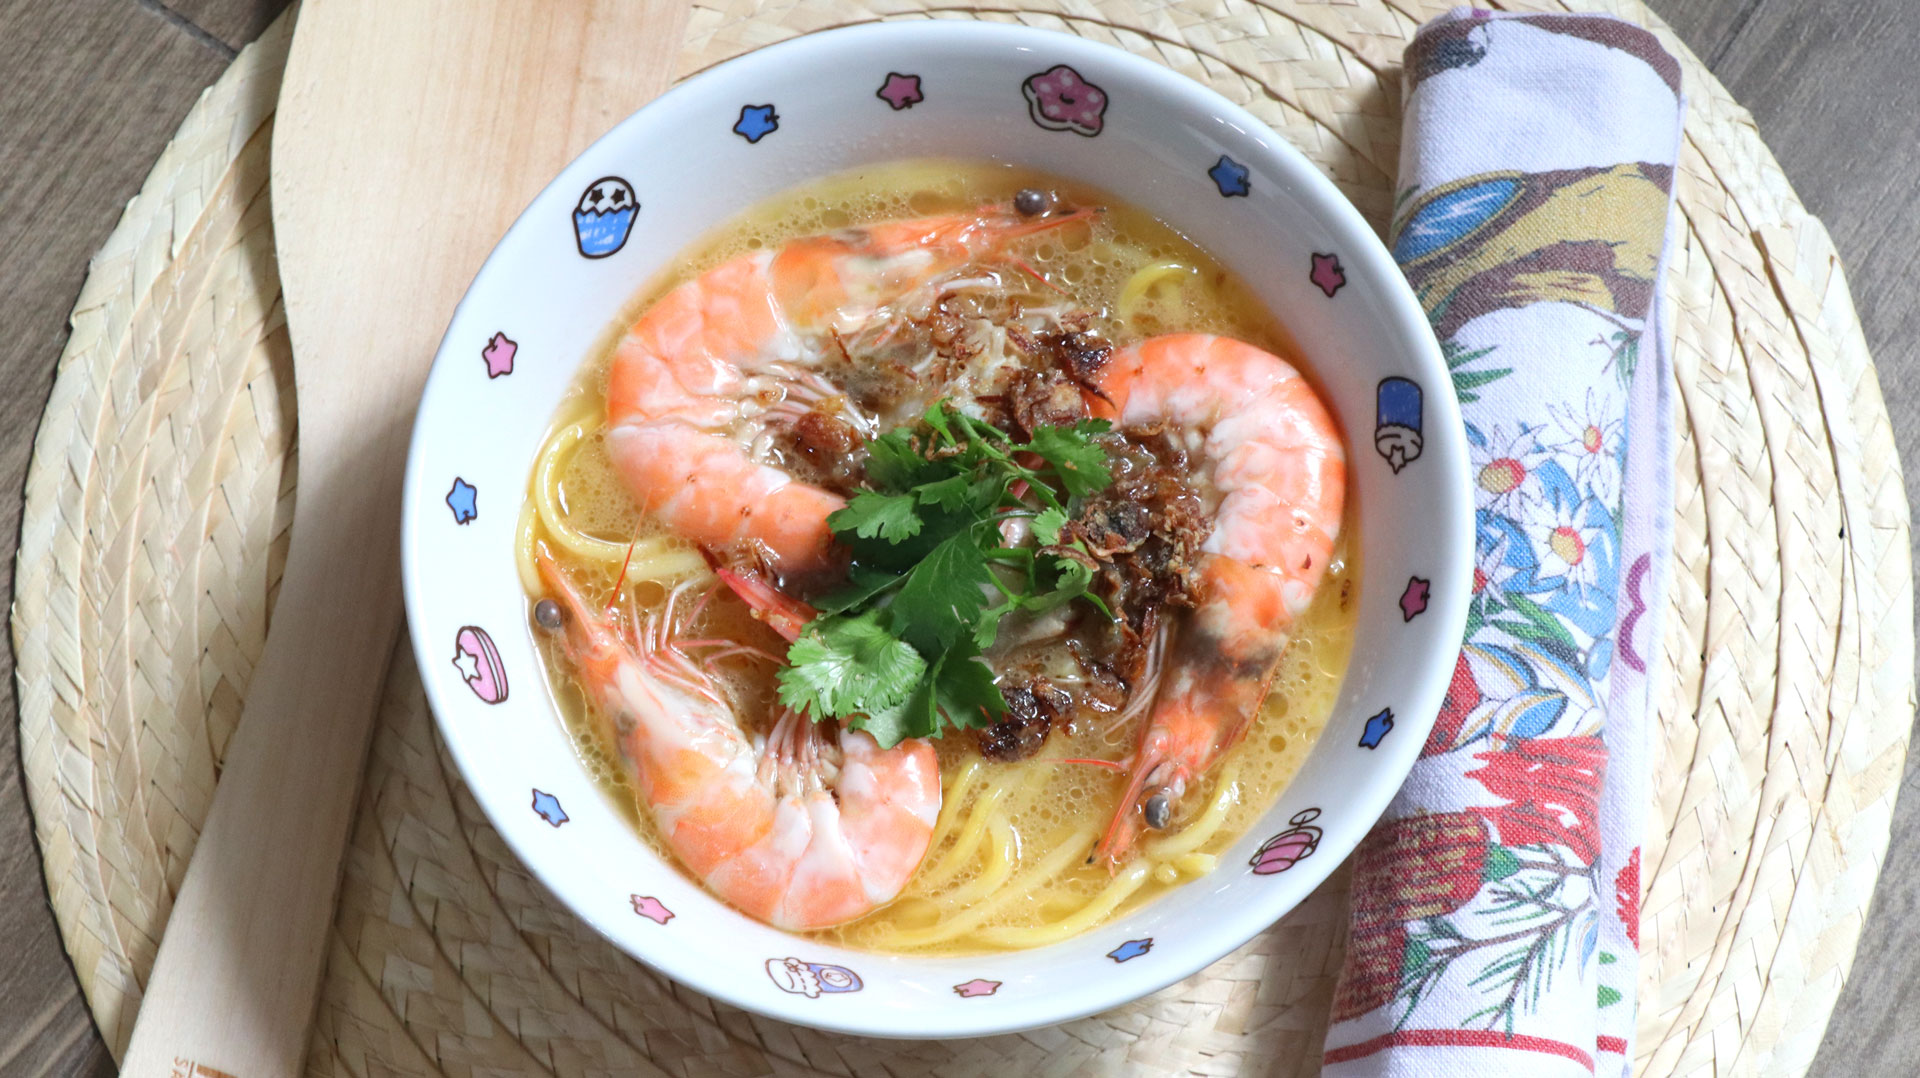 two-bad-chefs-prawn-noodle-dish-03.jpg